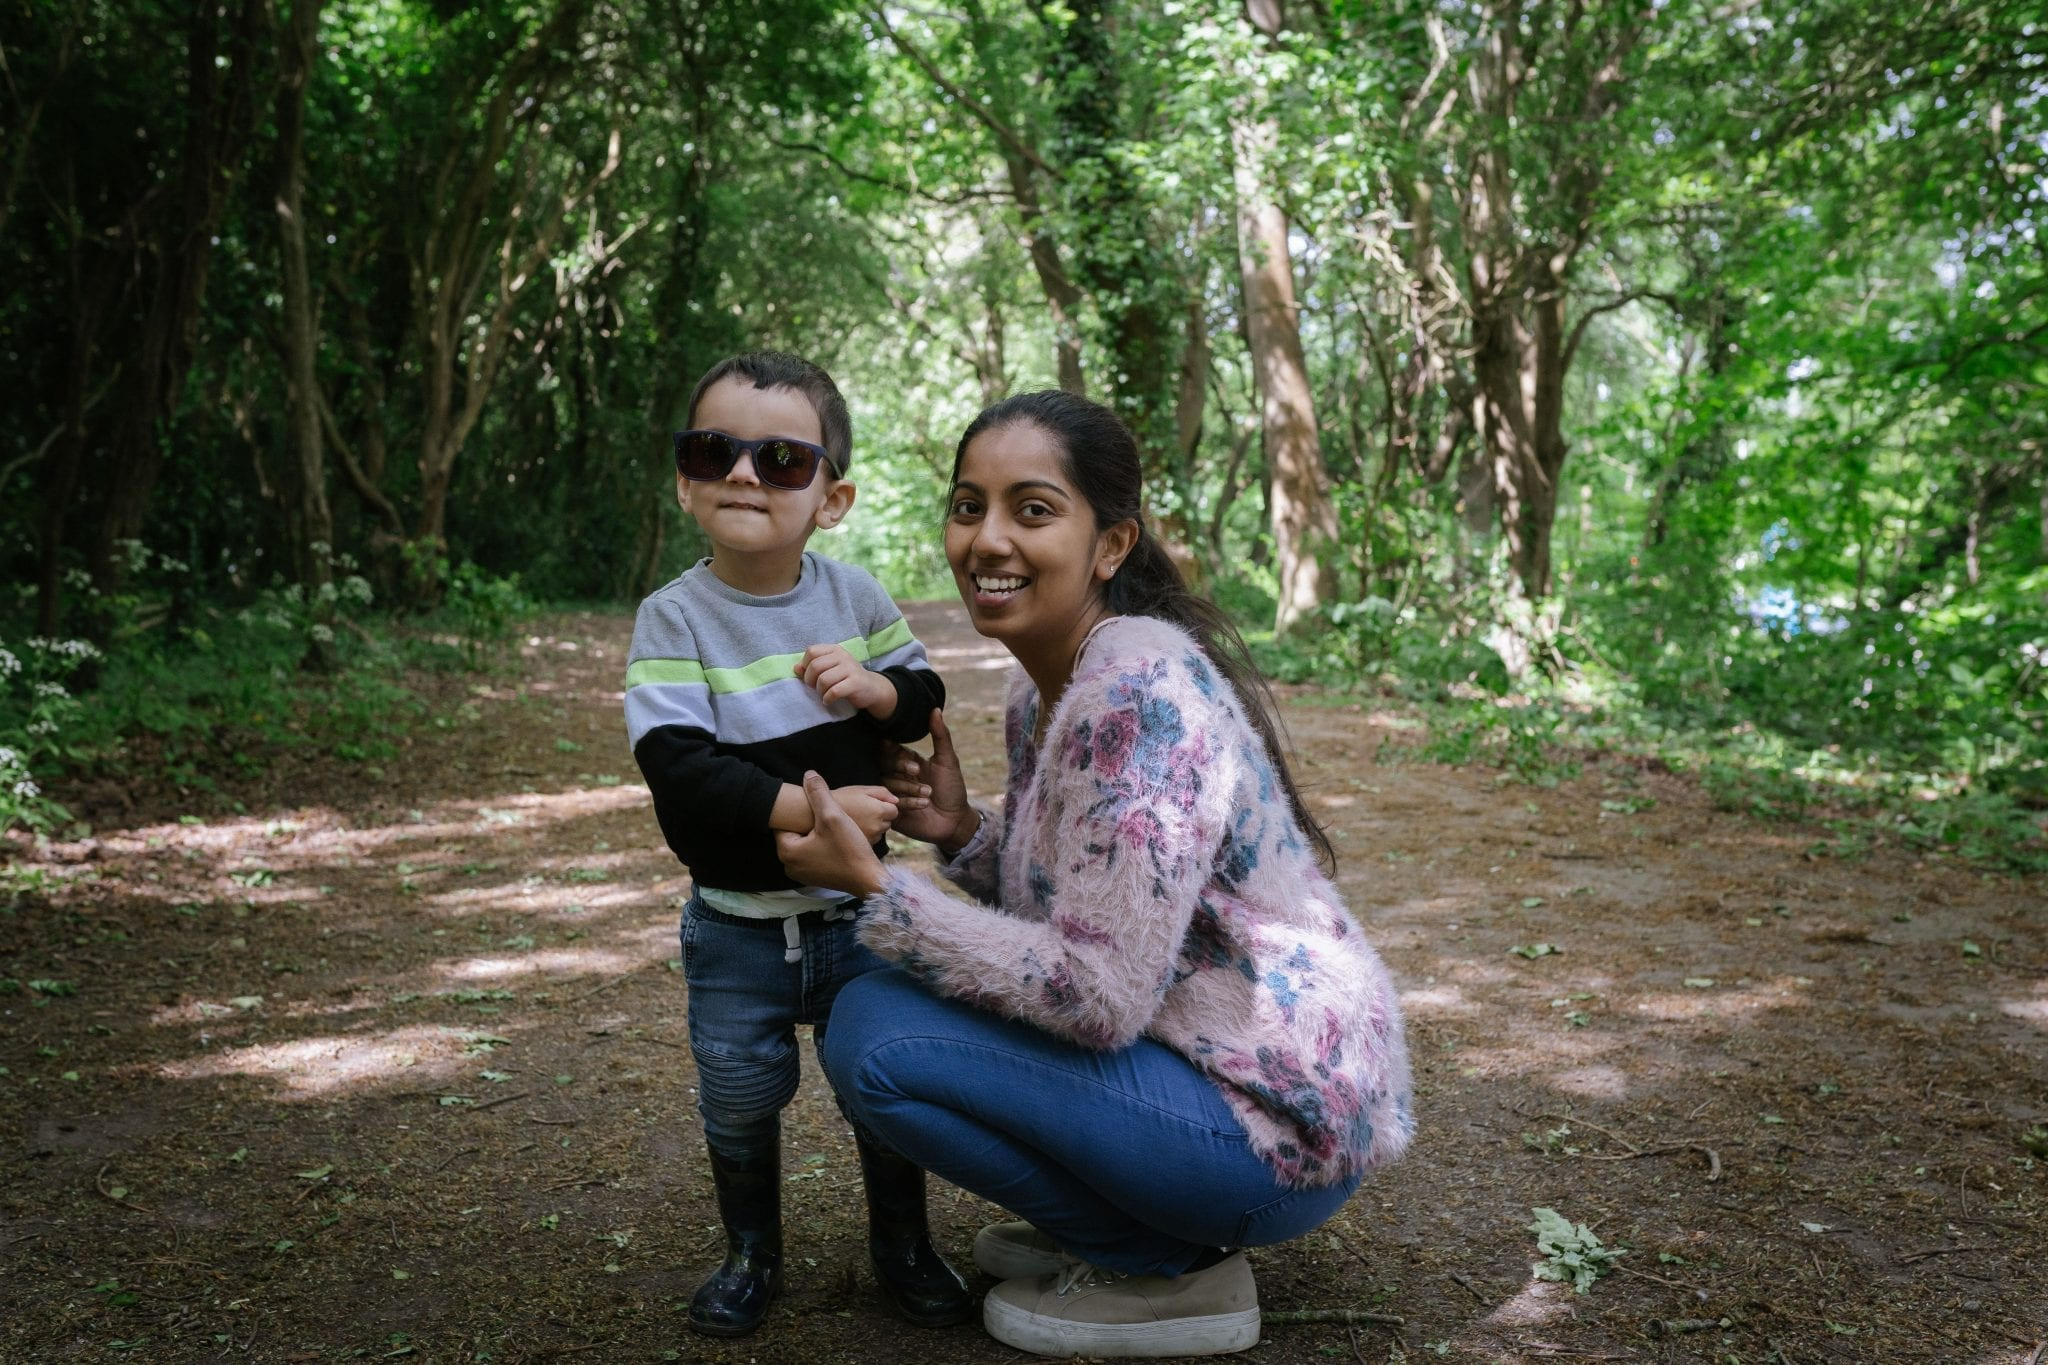 Family Photography - Mum & Son